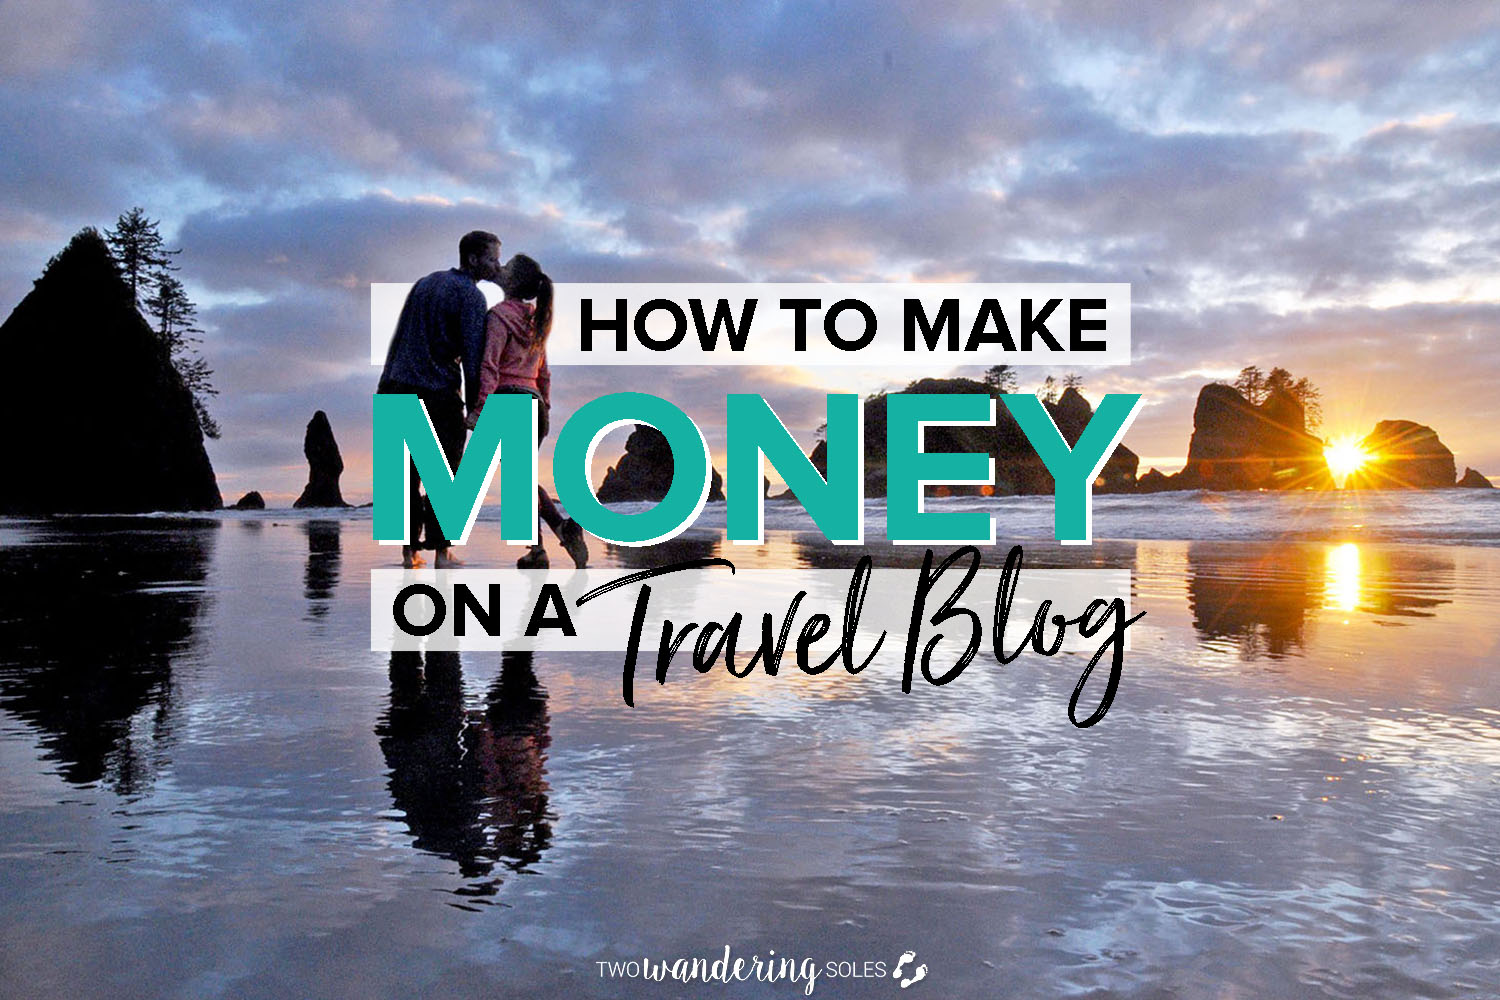 How to Make Money on a Travel Blog